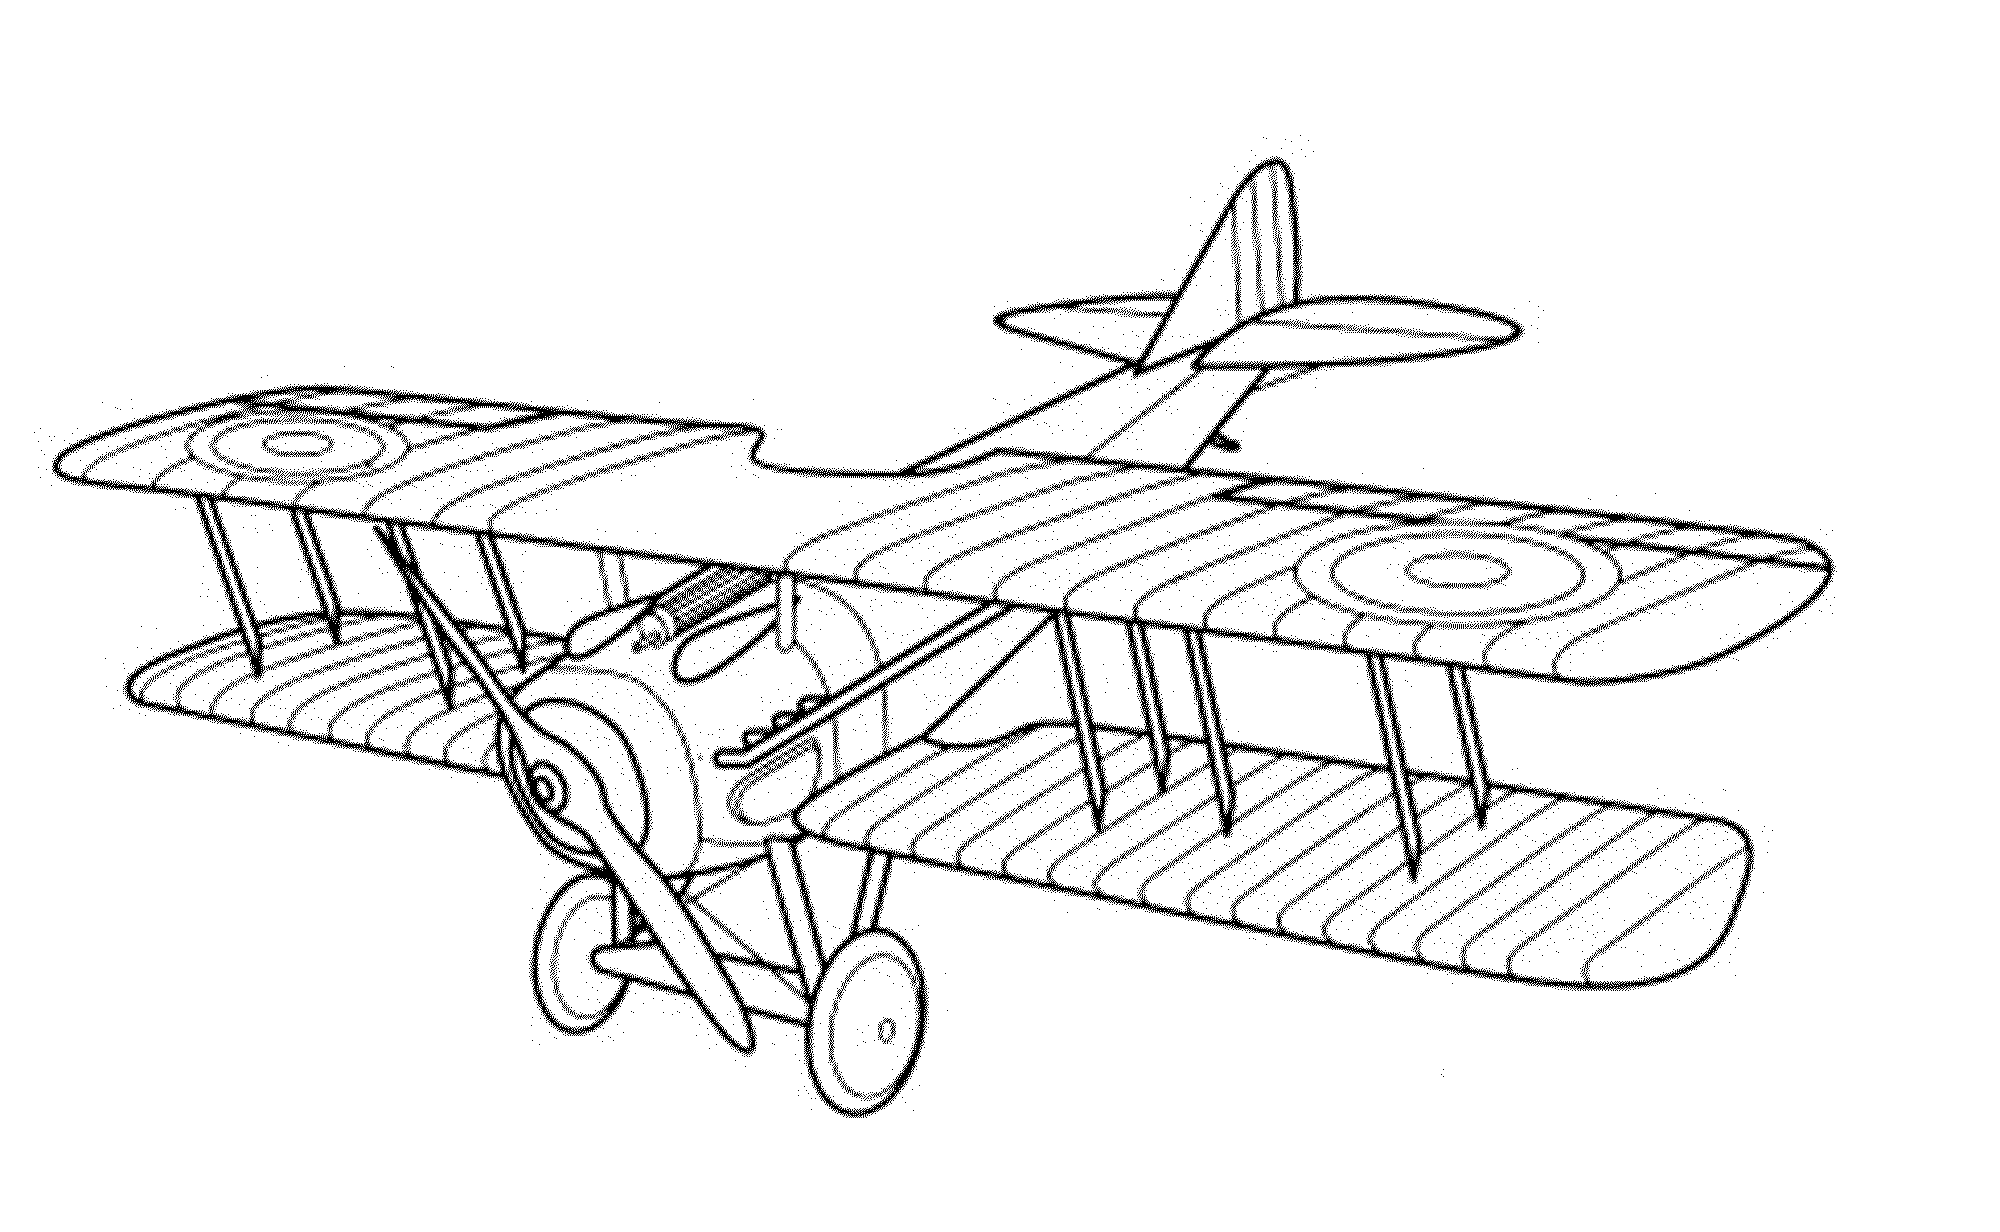 Biplane clipart coloring page. Vintage airplane pages printable